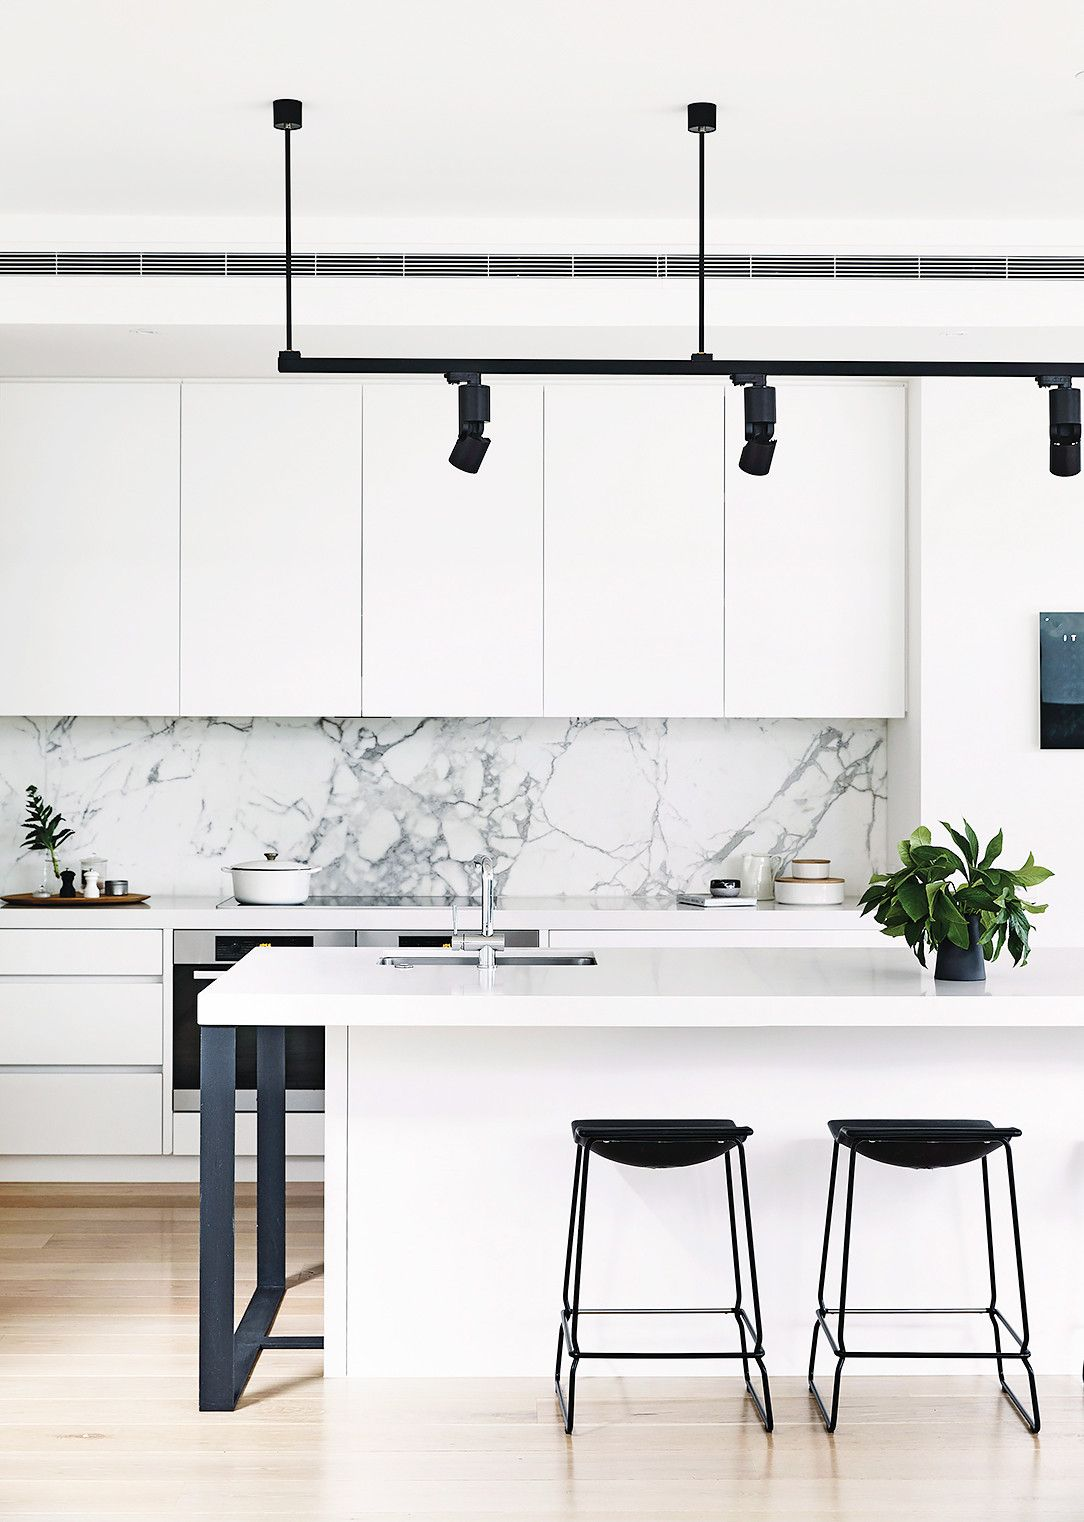 The Décor Tricks That Are Guaranteed To Make You Hier And Healthier Via